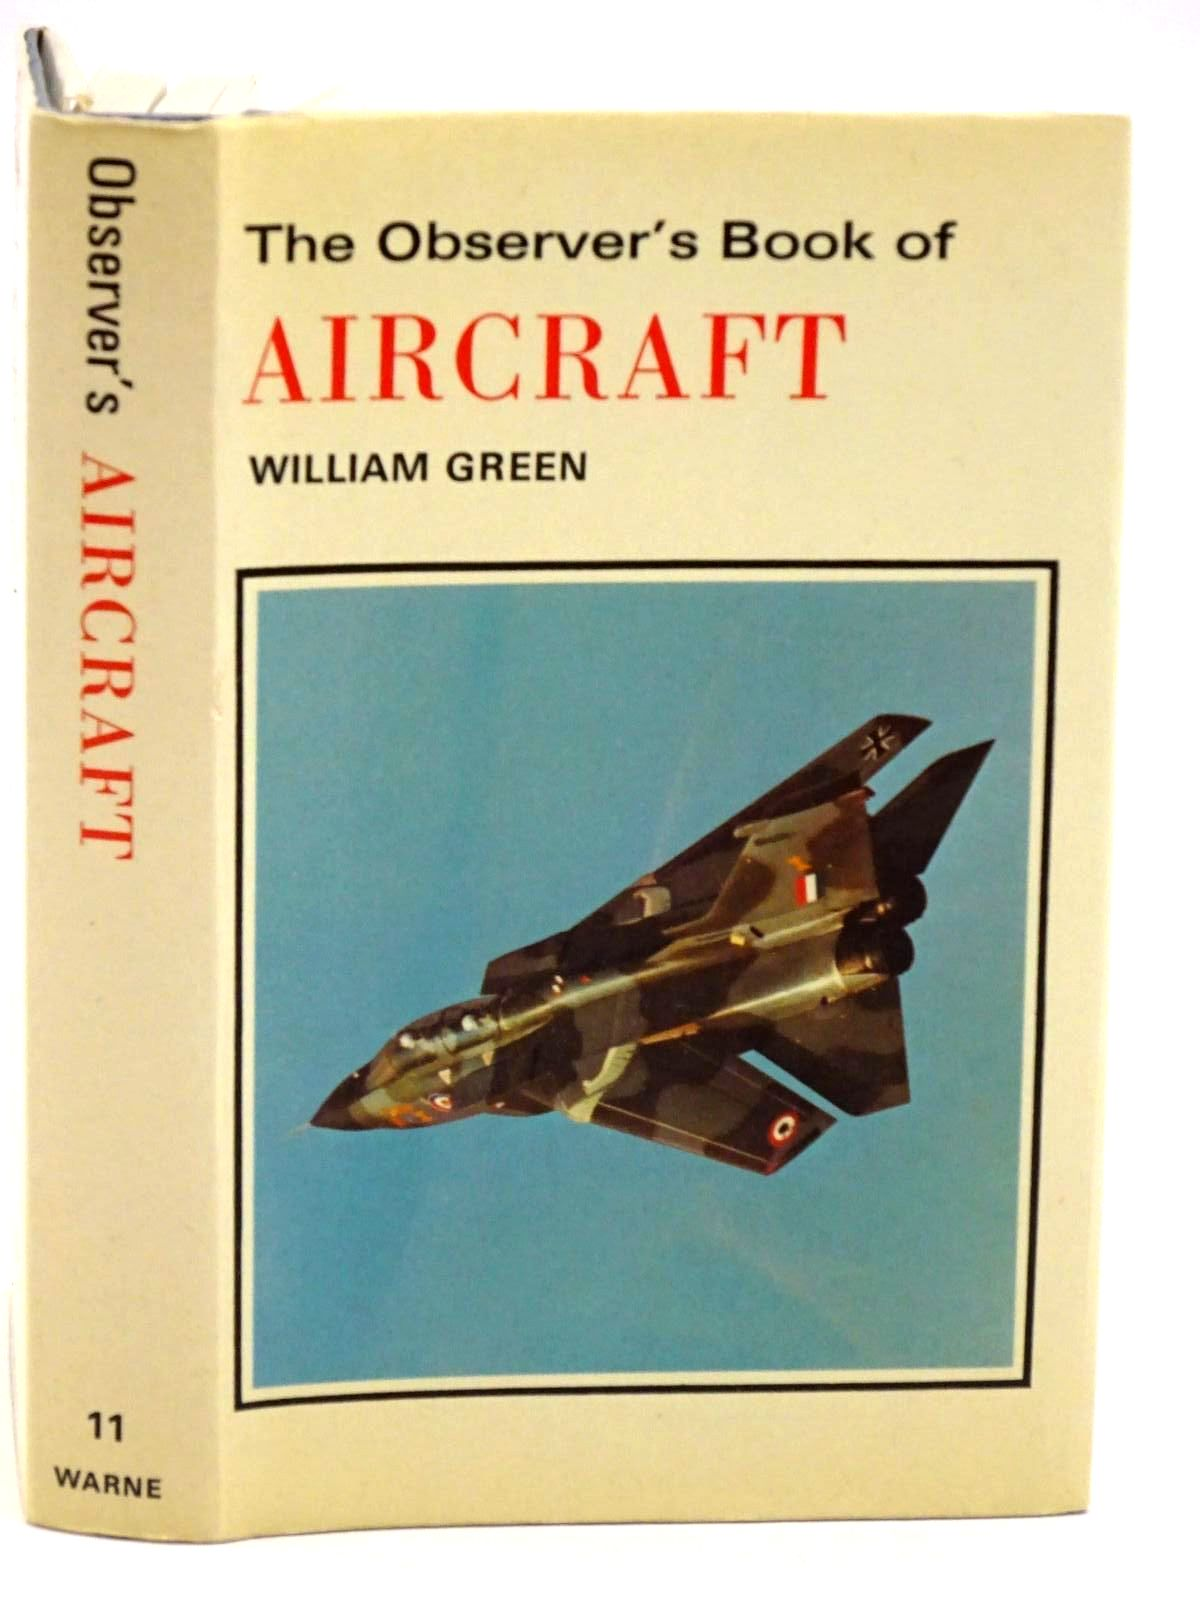 Photo of THE OBSERVER'S BOOK OF AIRCRAFT written by Green, William illustrated by Punnett, Dennis published by Frederick Warne & Co Ltd., Frederick Warne & Co. Inc. (STOCK CODE: 1318169)  for sale by Stella & Rose's Books